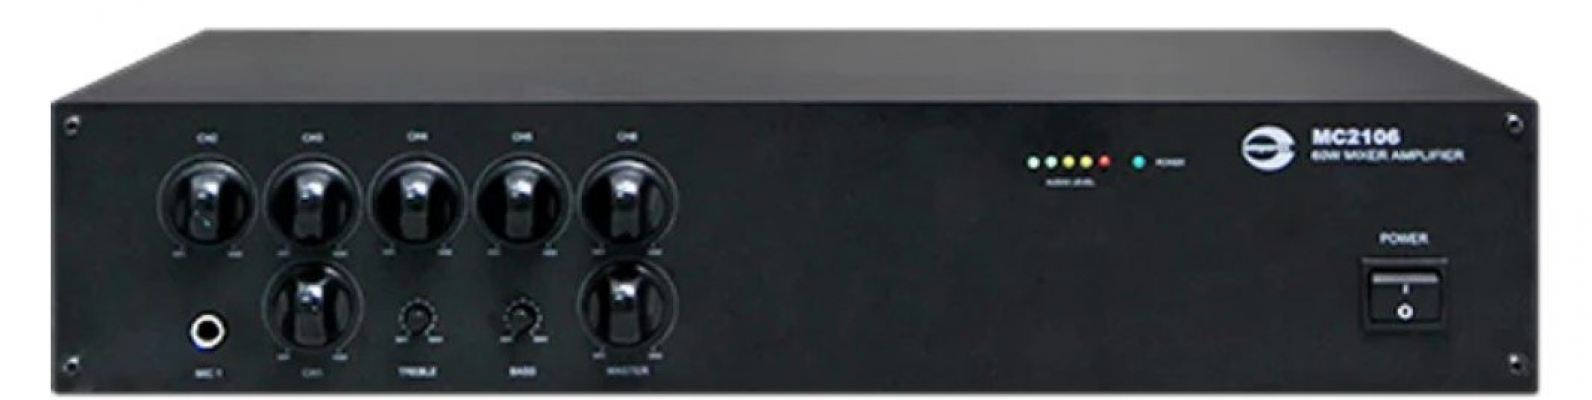 MC2106. Amperes 60W 100V line basic mixer amplifier. #AIASIA Connect